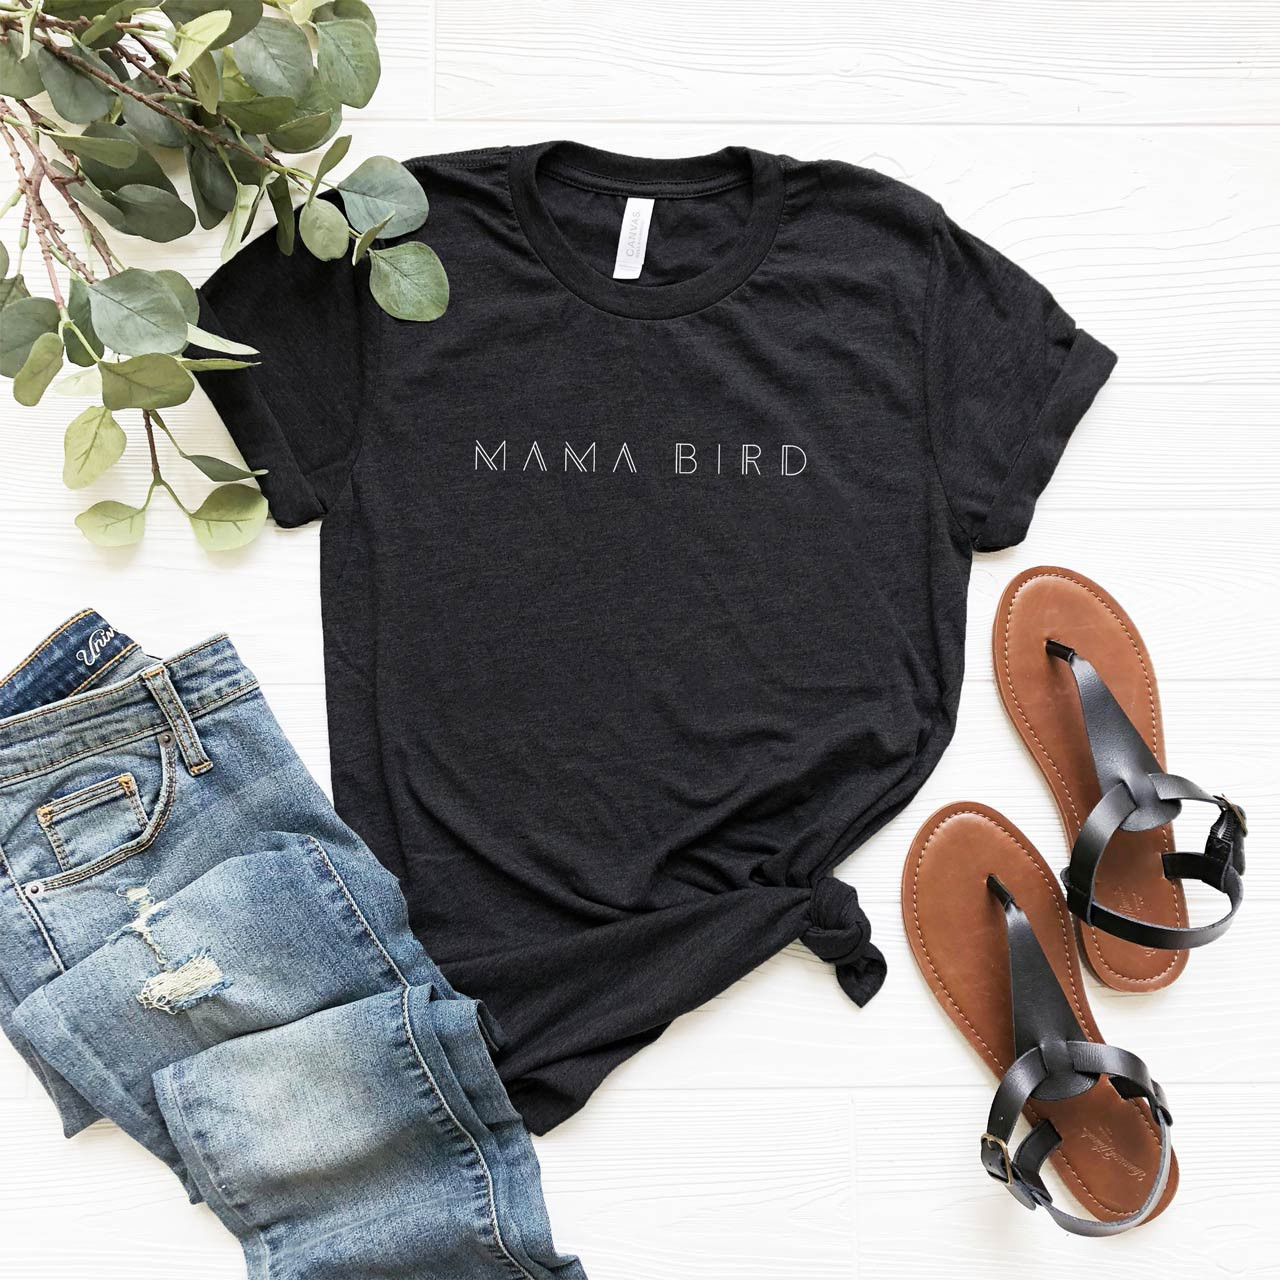 MAMA BIRD Vintage T-Shirt (White on Charcoal Black) from The Printed Home